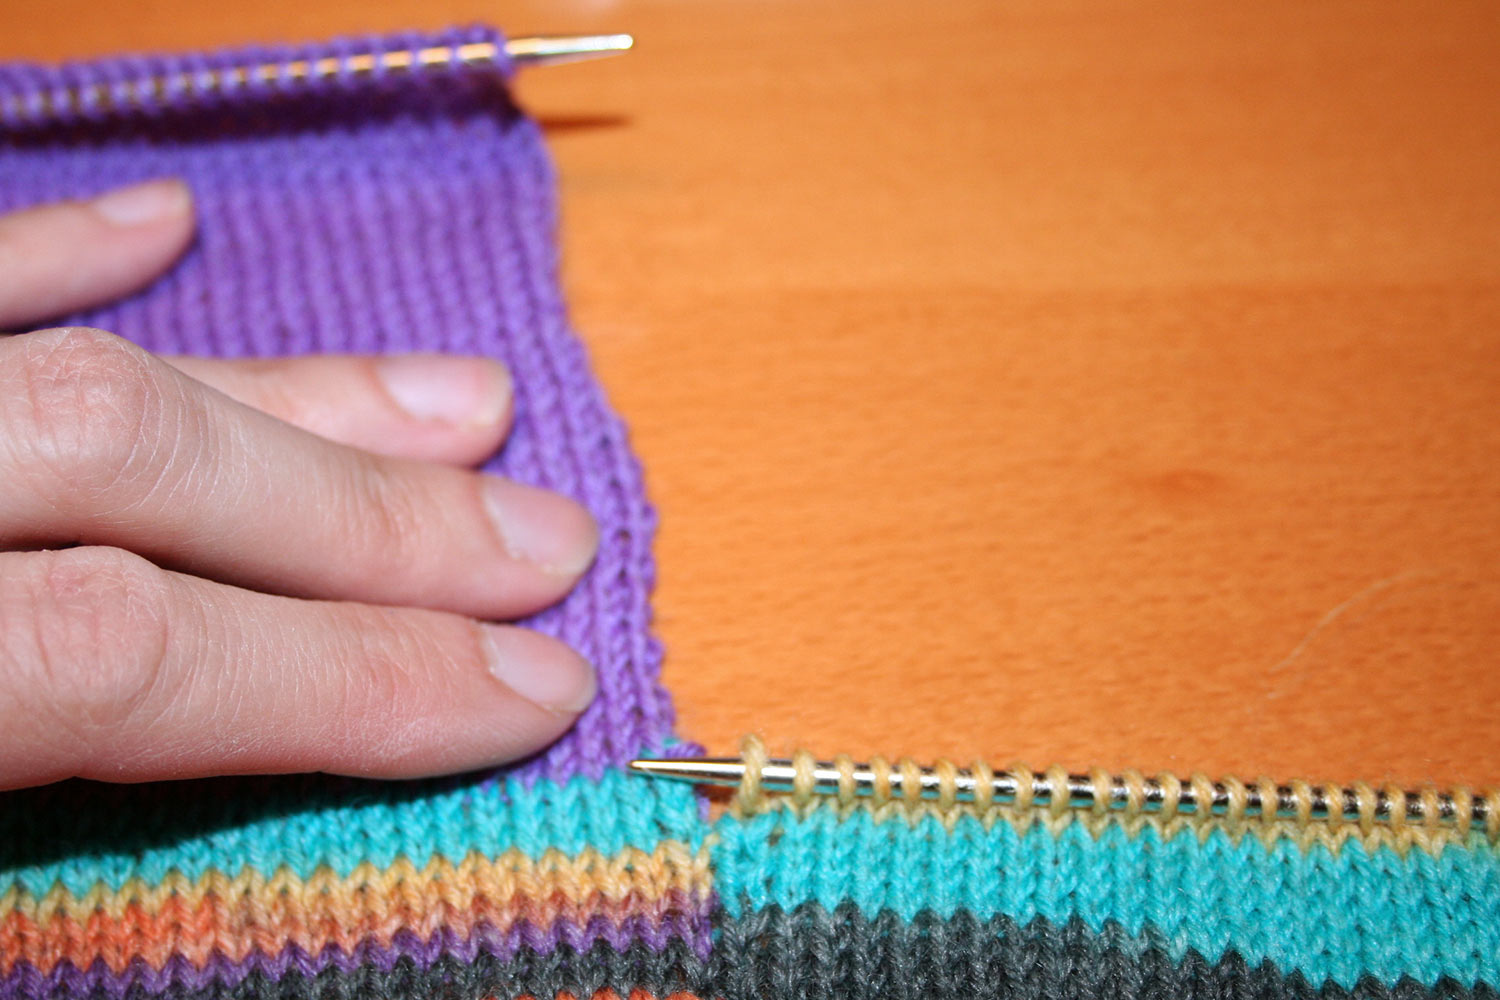 Intarsia project with large colour block removed and knitting needles on two different rows several inches apart.